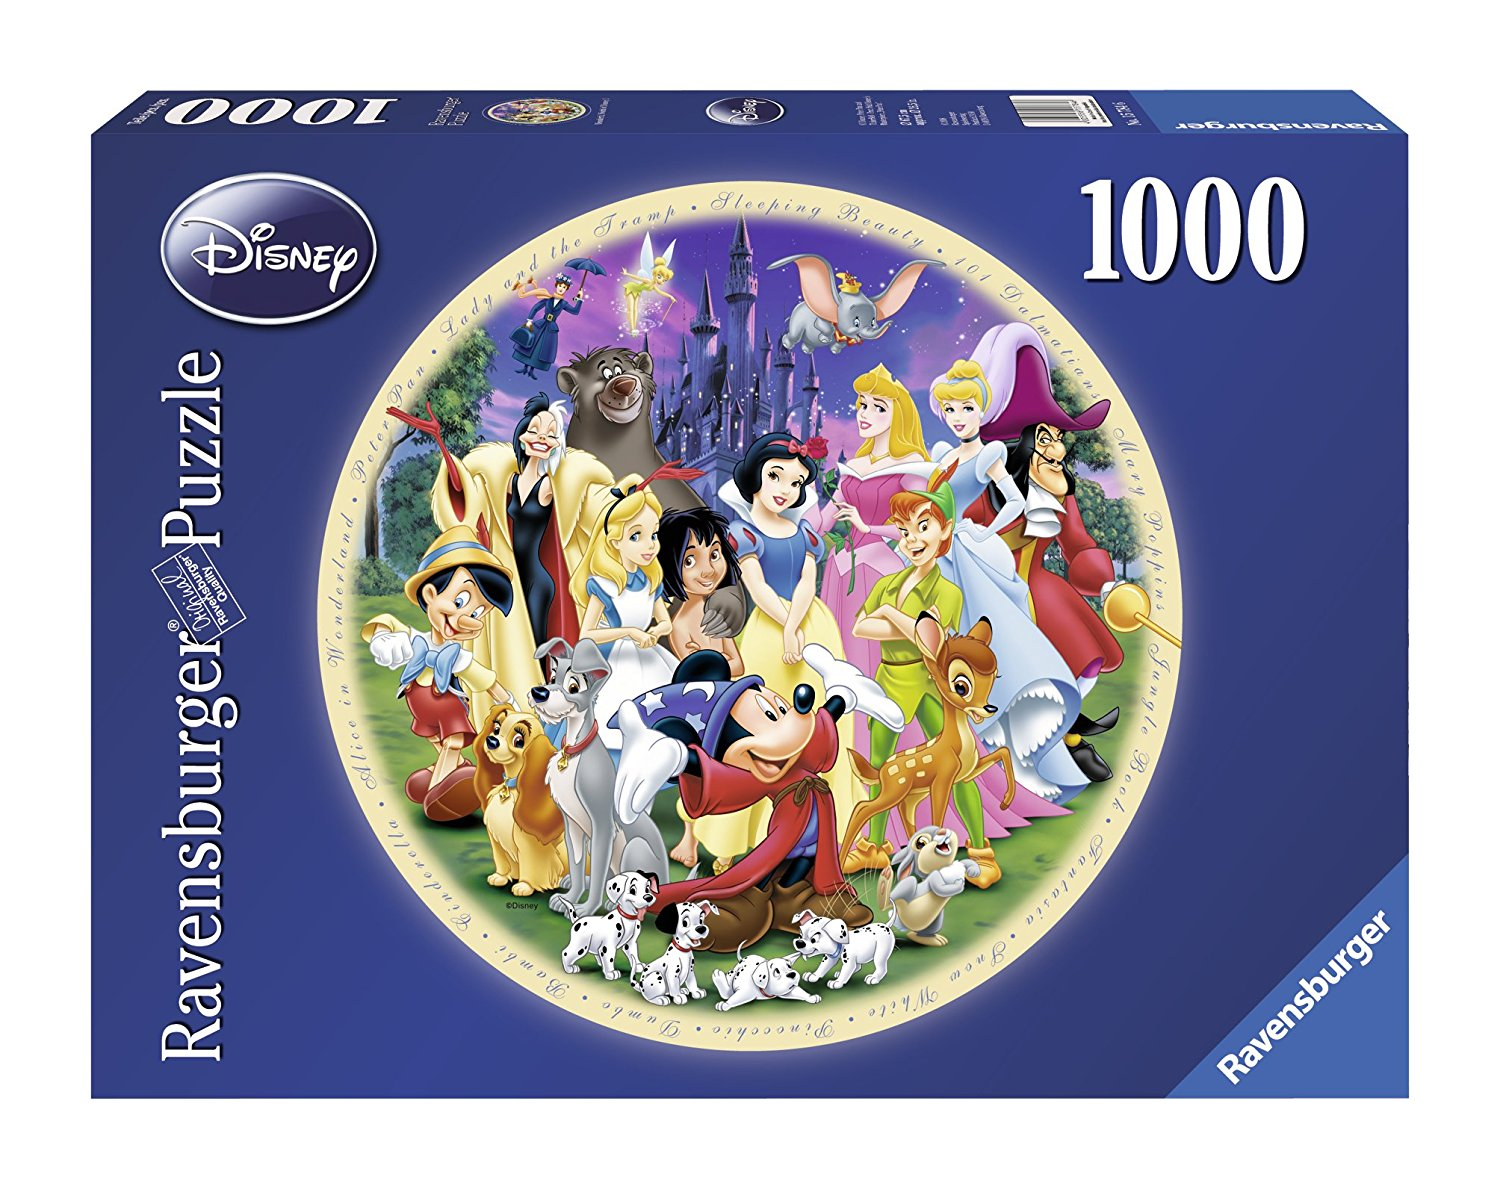 World Of Disney Collector's Edition, 1000pc